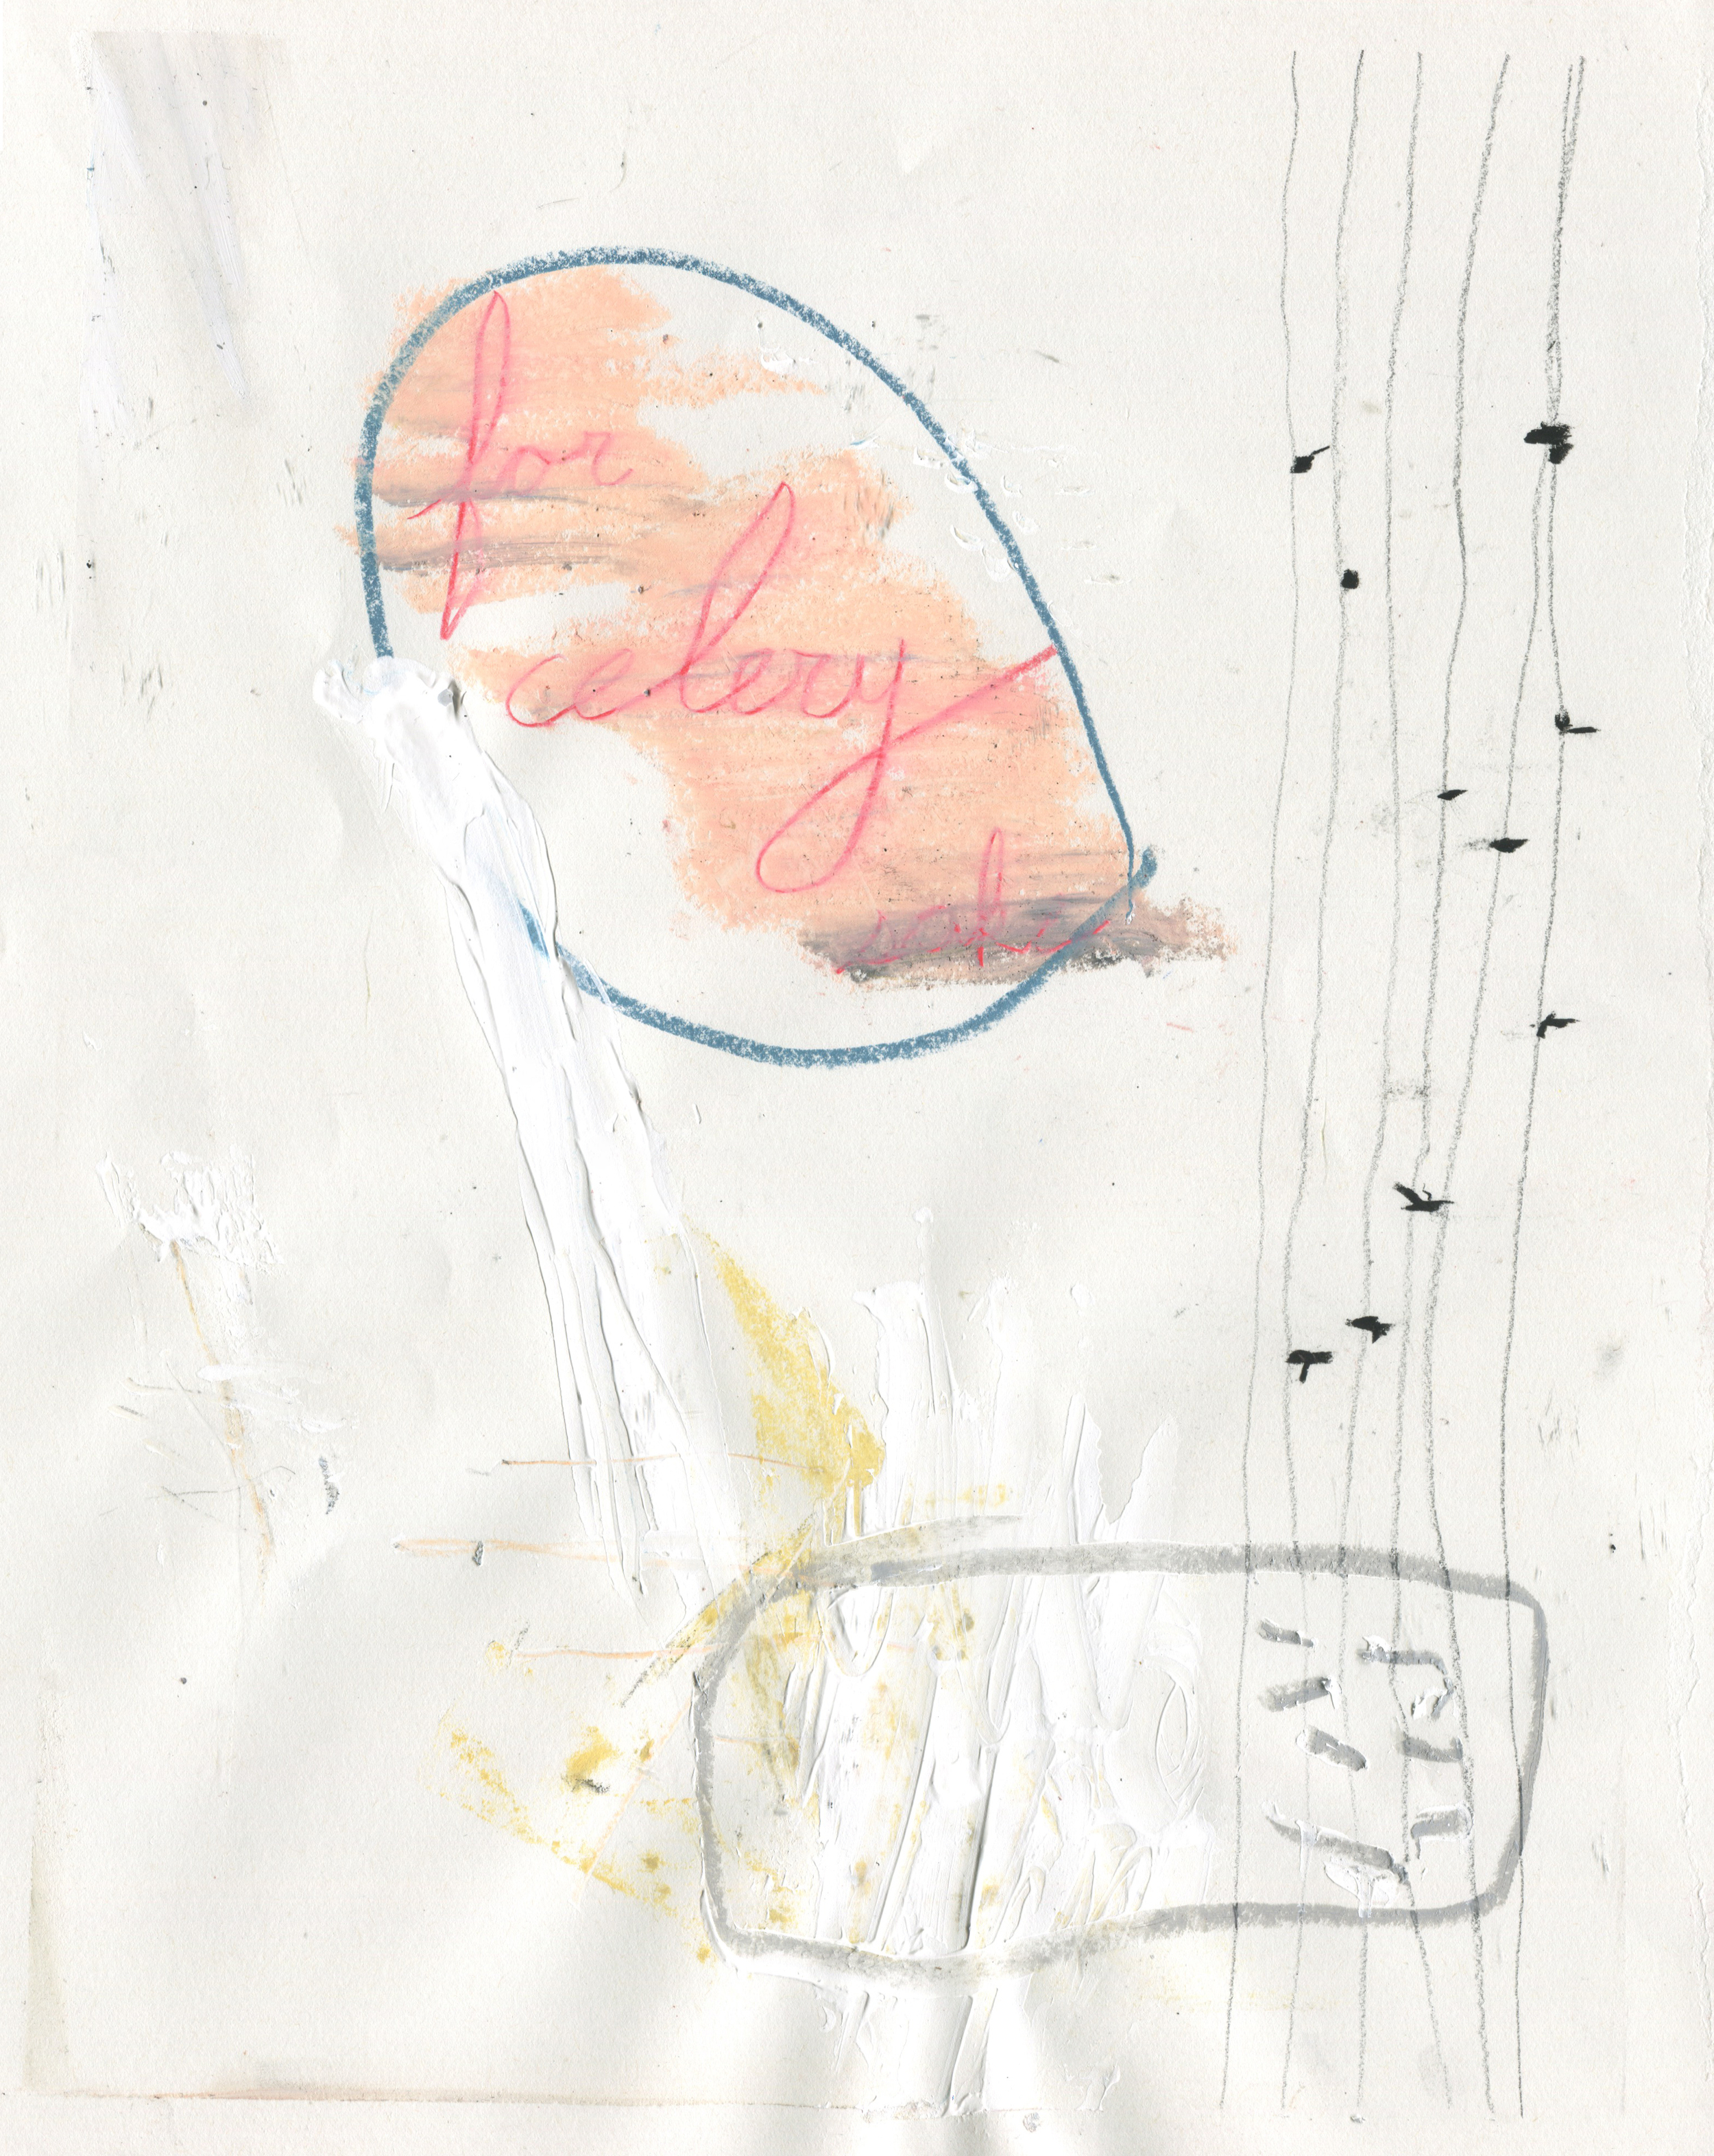 New Song, Borrowed Chords , 2016  14 x 11 inches  Chalk Pastel, Graphite, Charcoal, Crayon, Colored Pencil, and Acrylic on Paper